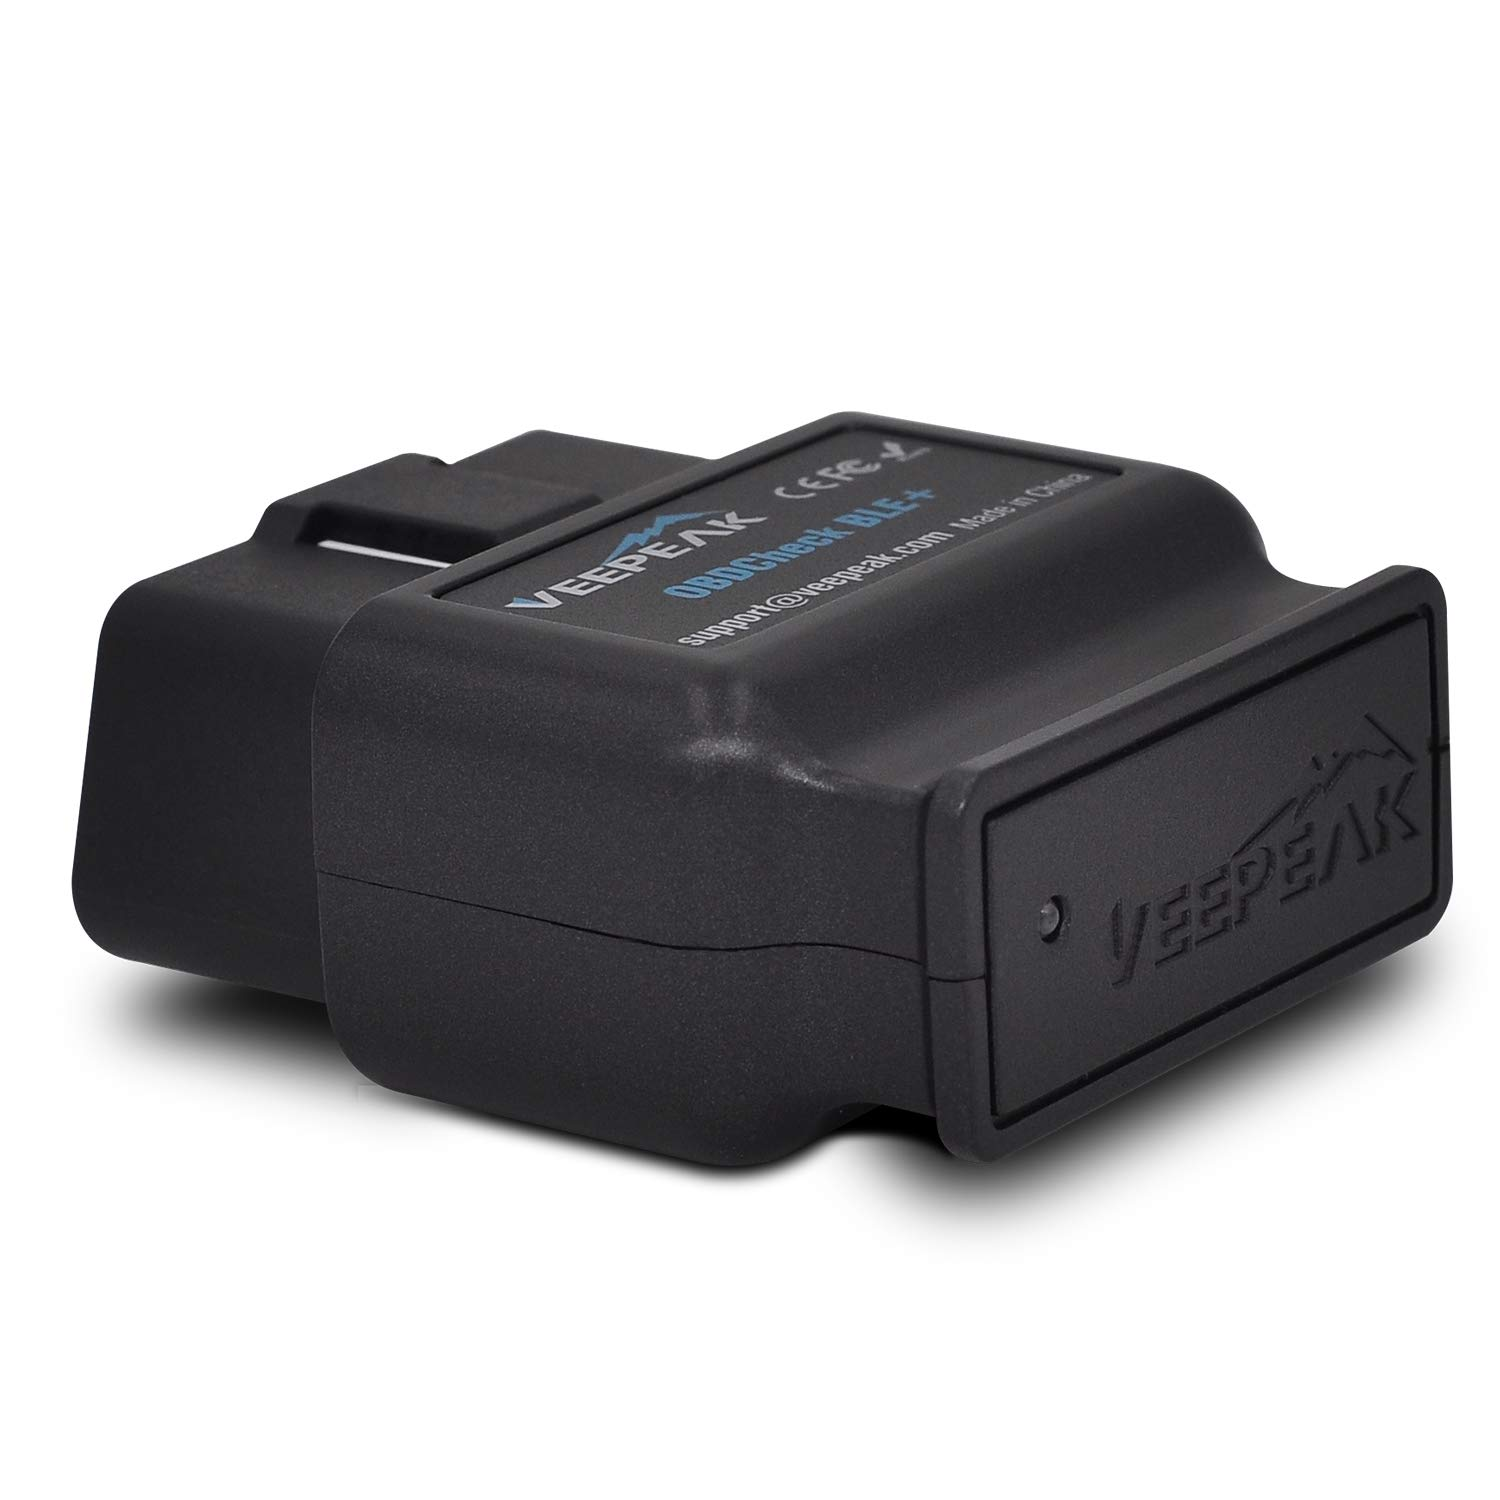 Veepeak OBDCheck BLE+ Bluetooth 4.0 OBD2 Scanner Code Reader for iOS & Android, Car Diagnostic Scan Tool for Year 1996 and Newer Vehicles in The US